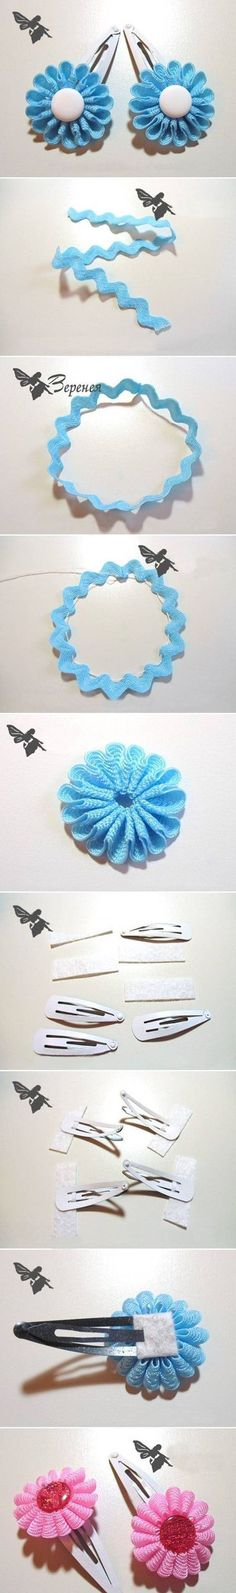 Ideas for hair accessories felt fabric flowers Ribbon Crafts, Ribbon Bows, Fabric Crafts, Sewing Crafts, Ribbons, Ribbon Flower, Diy Ribbon, Sewing Diy, Felt Flowers